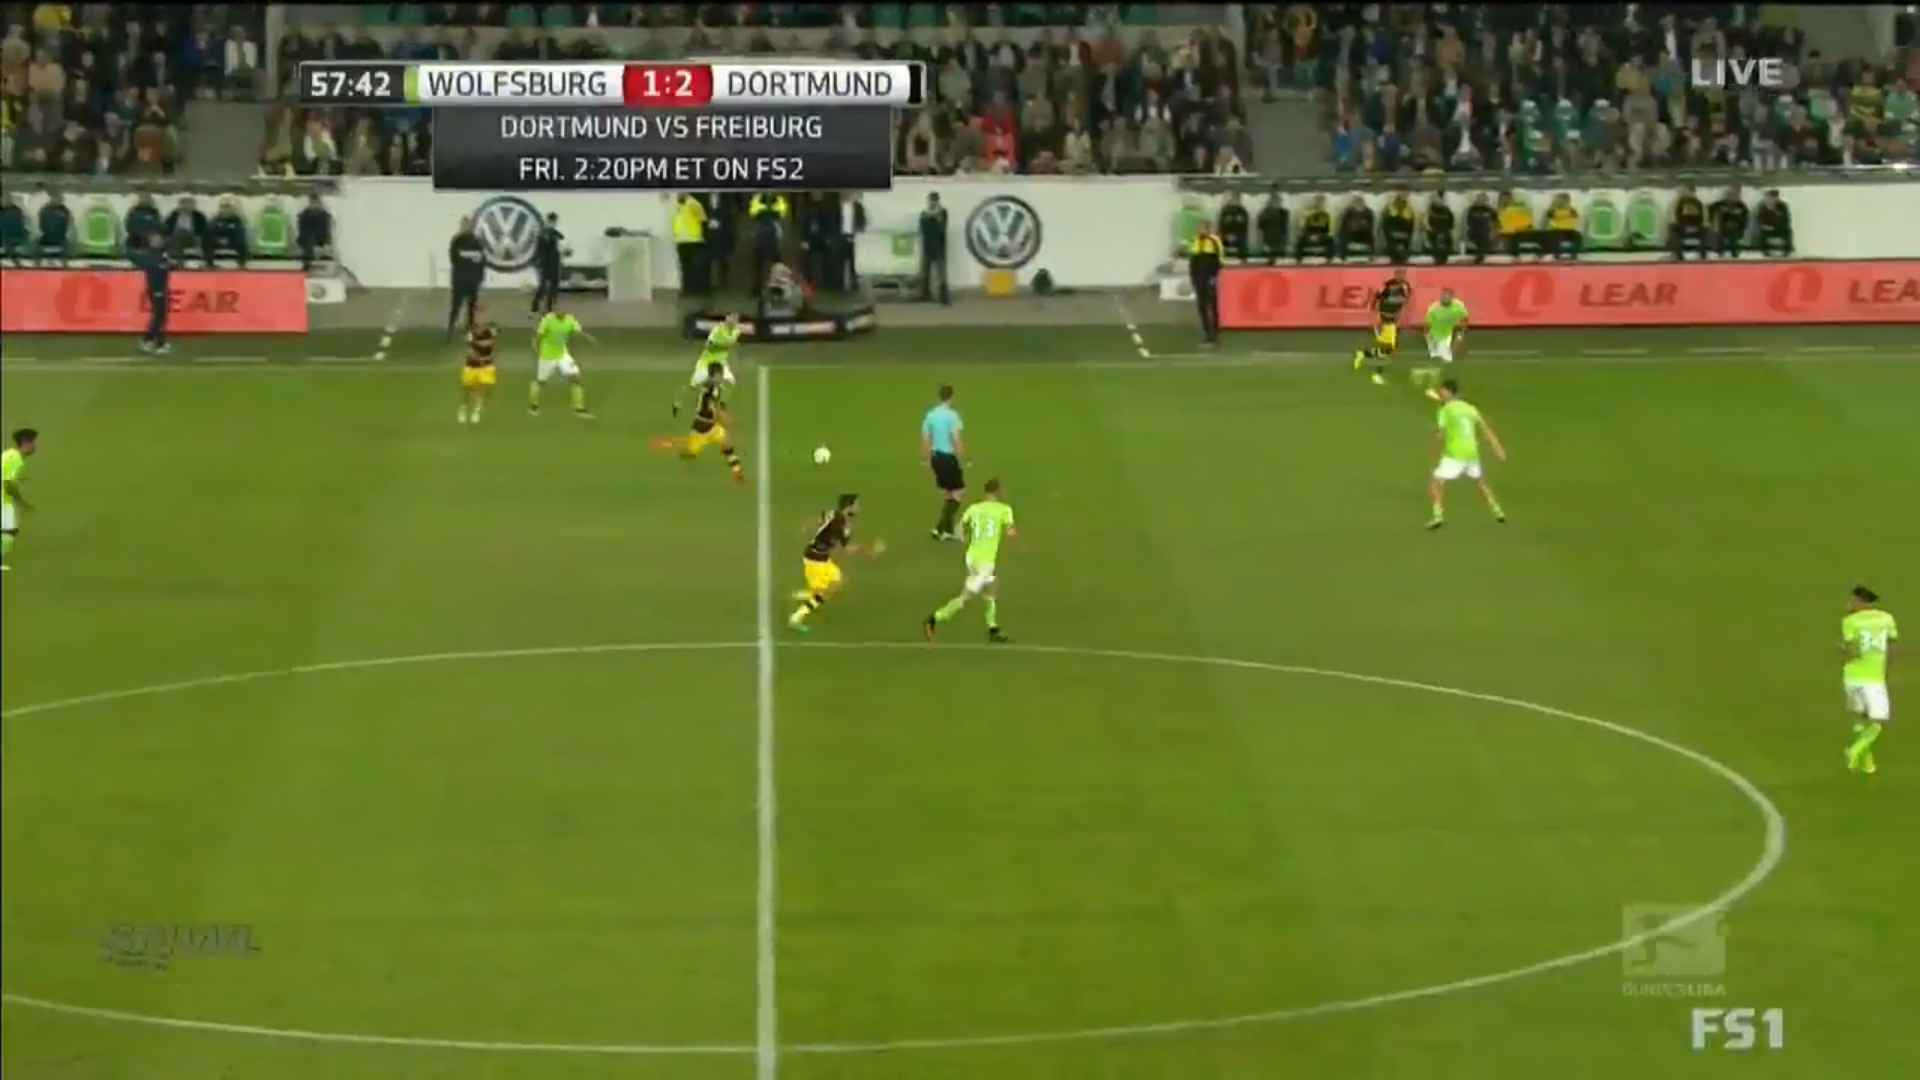 Götze plays to Guerreiro, while Castro is on the move